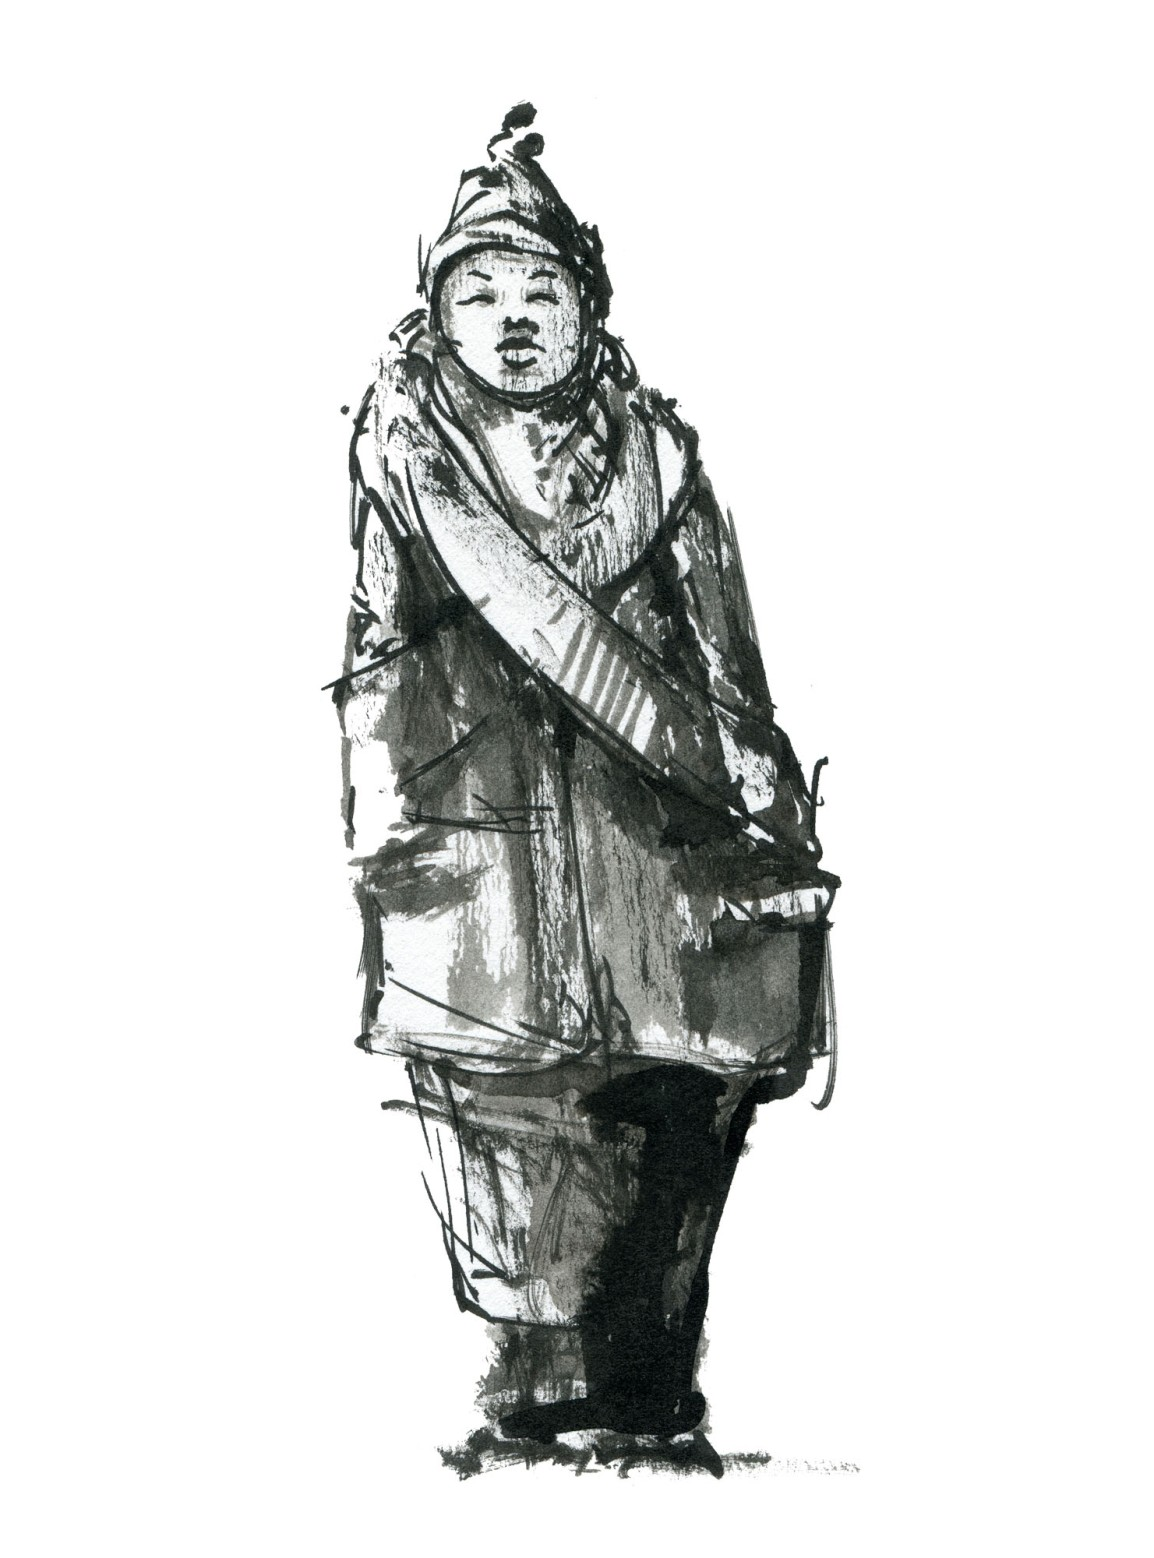 Street sketch in pure ink, brushwork and painting by Frits Ahlefeldt